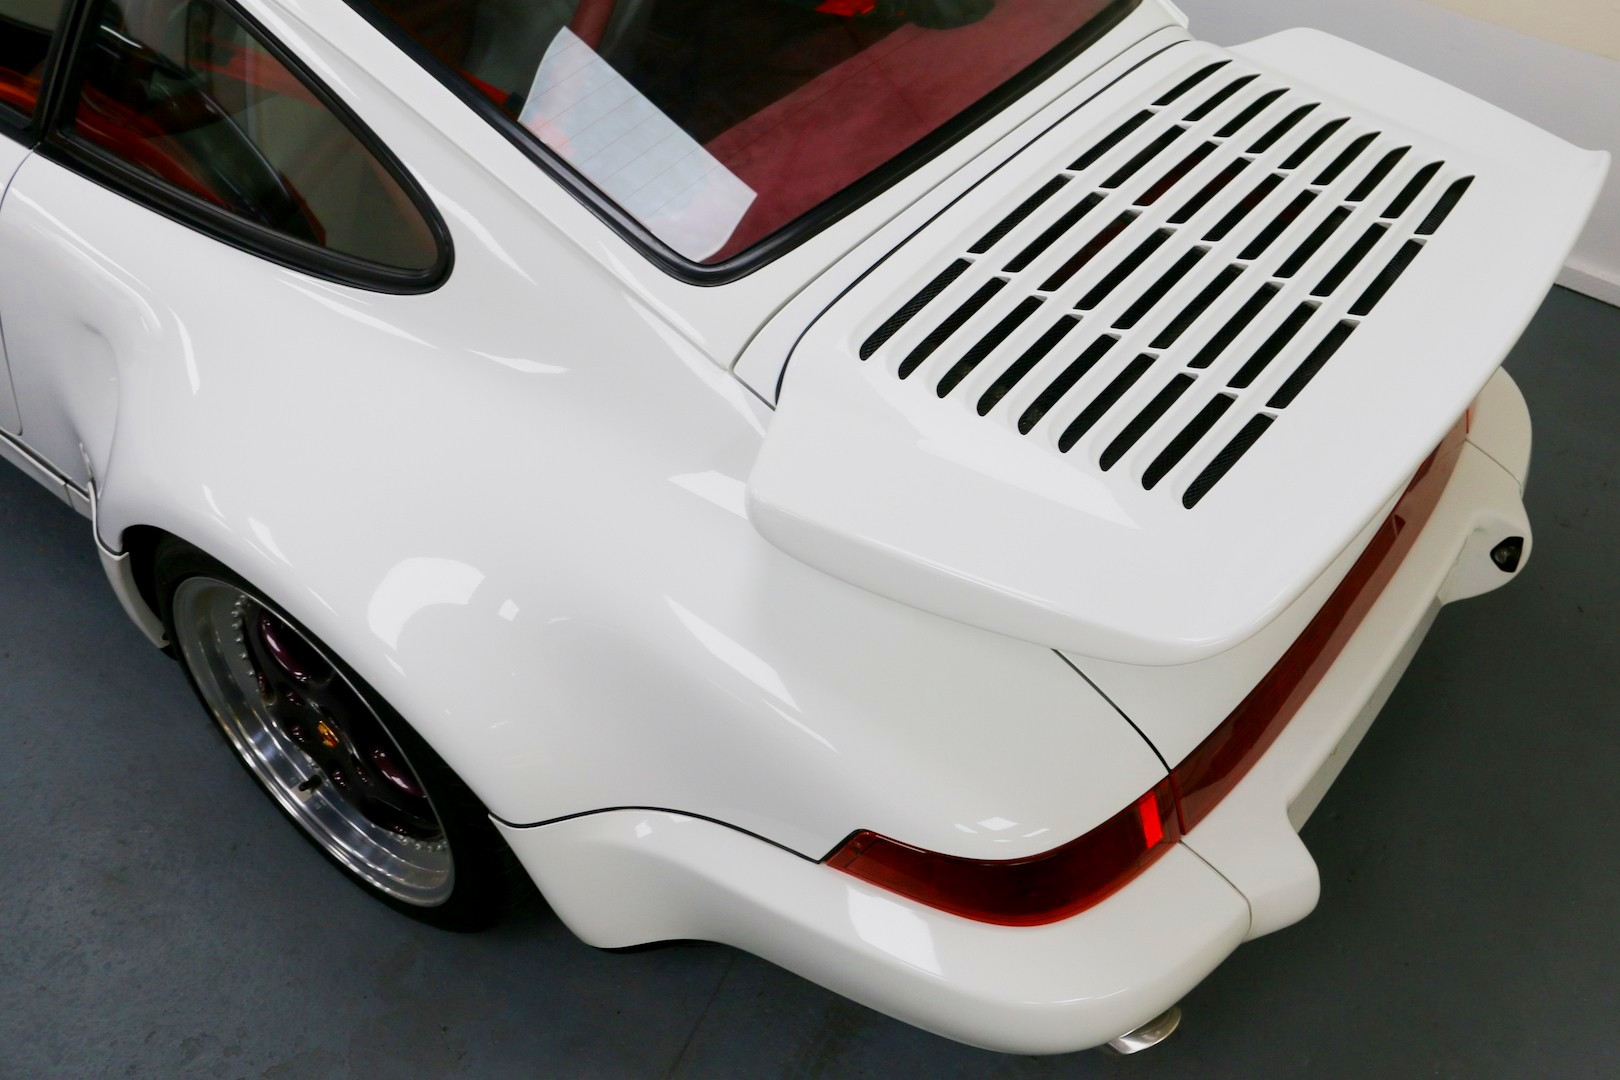 Best exotic cars of all times: 1993 Porsche 964 Turbo S Leichtbau, Sunningdale, UK, approx. $1,932,285.